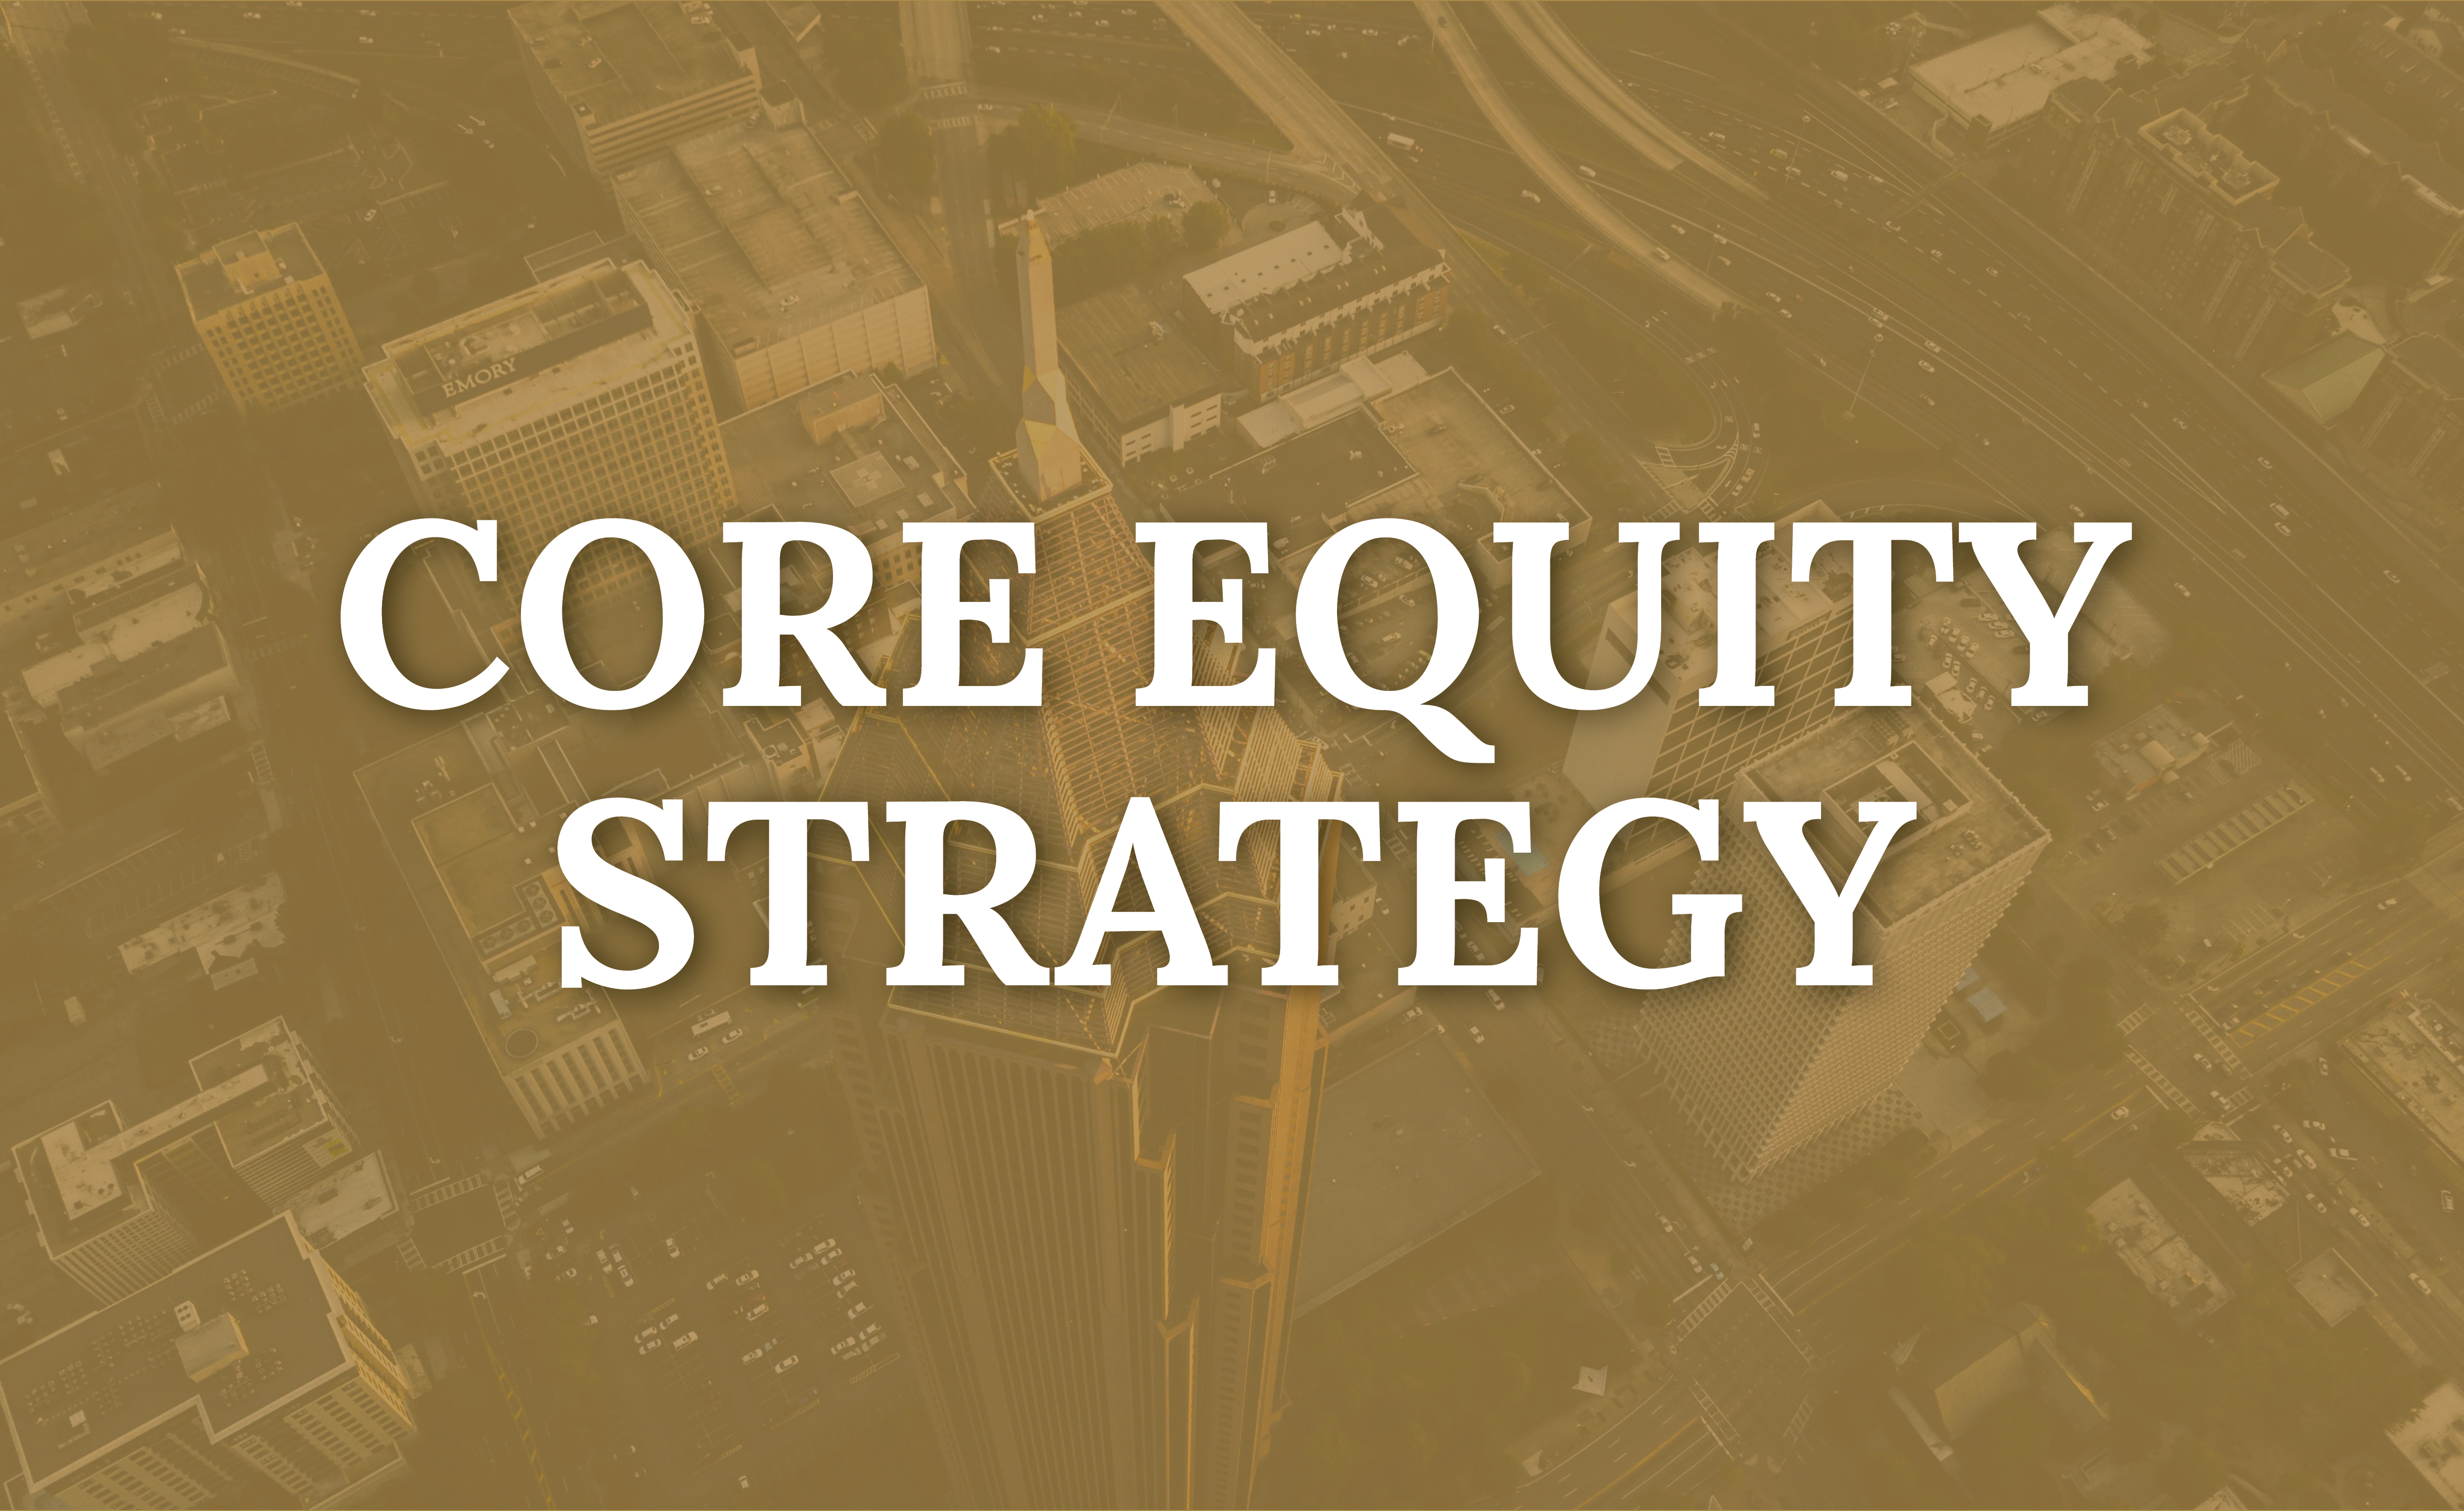 Core Equity